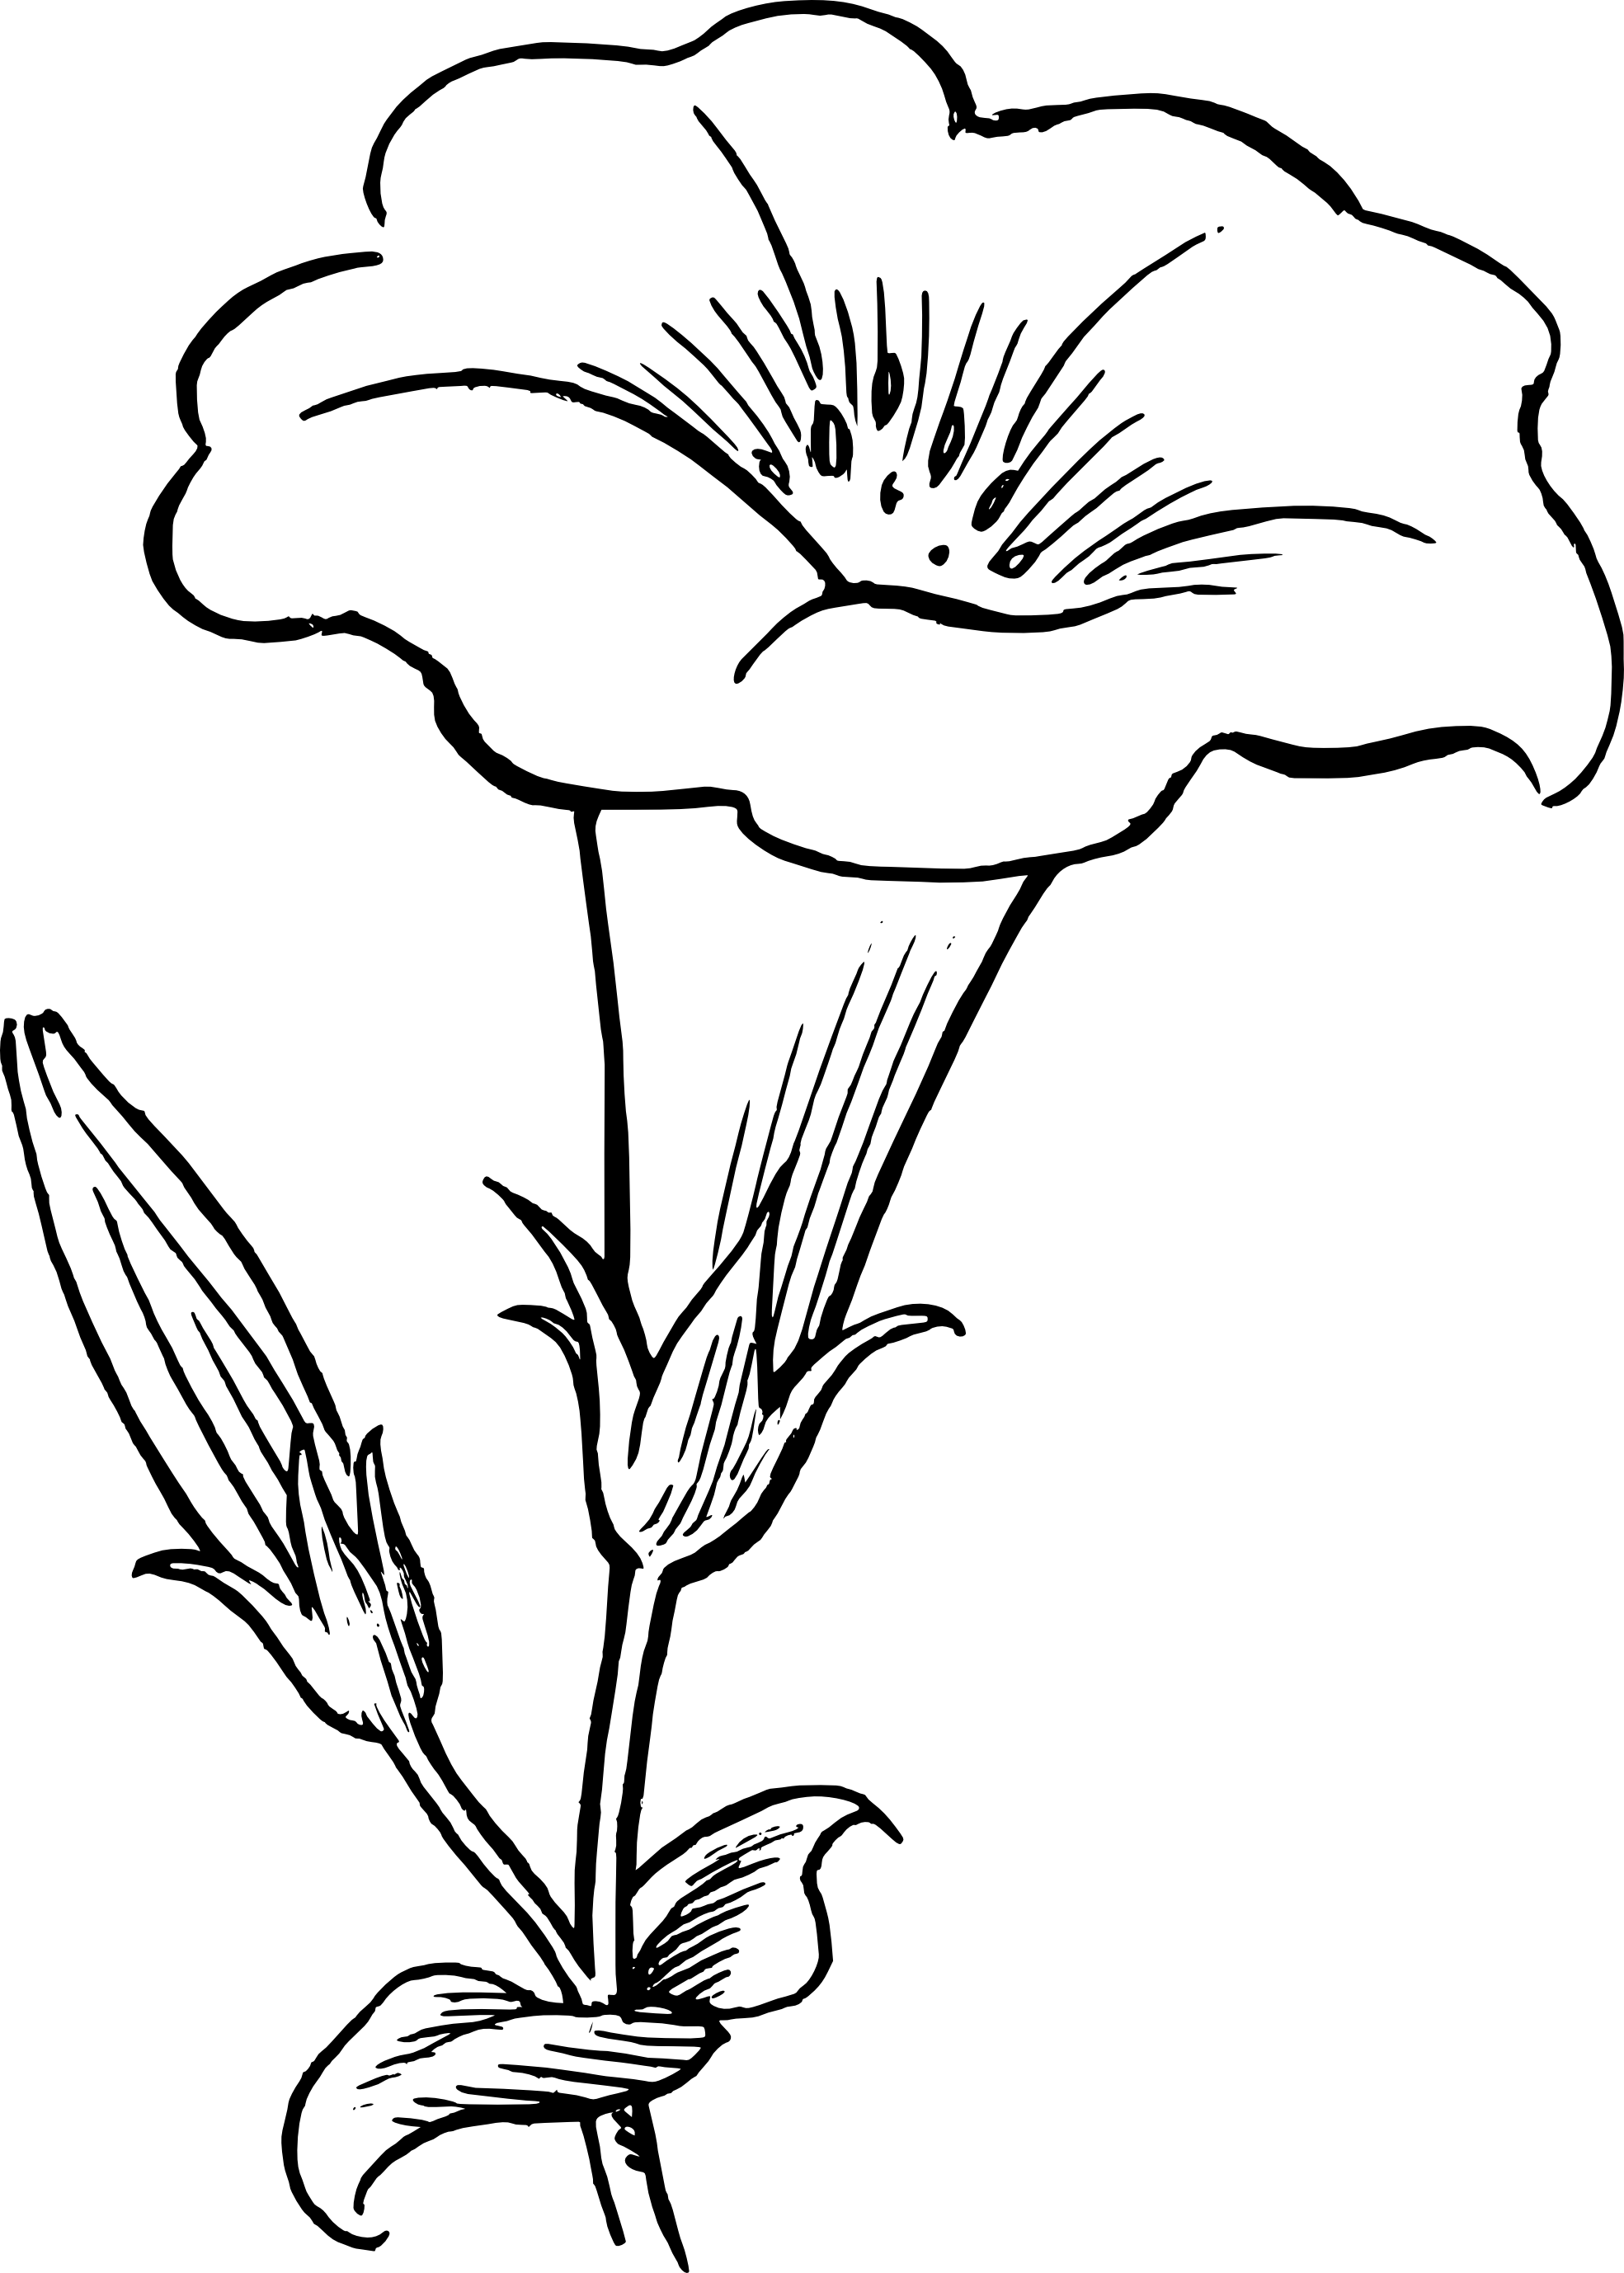 Drawing Lines Flowers : Drawing line flowers clipart best